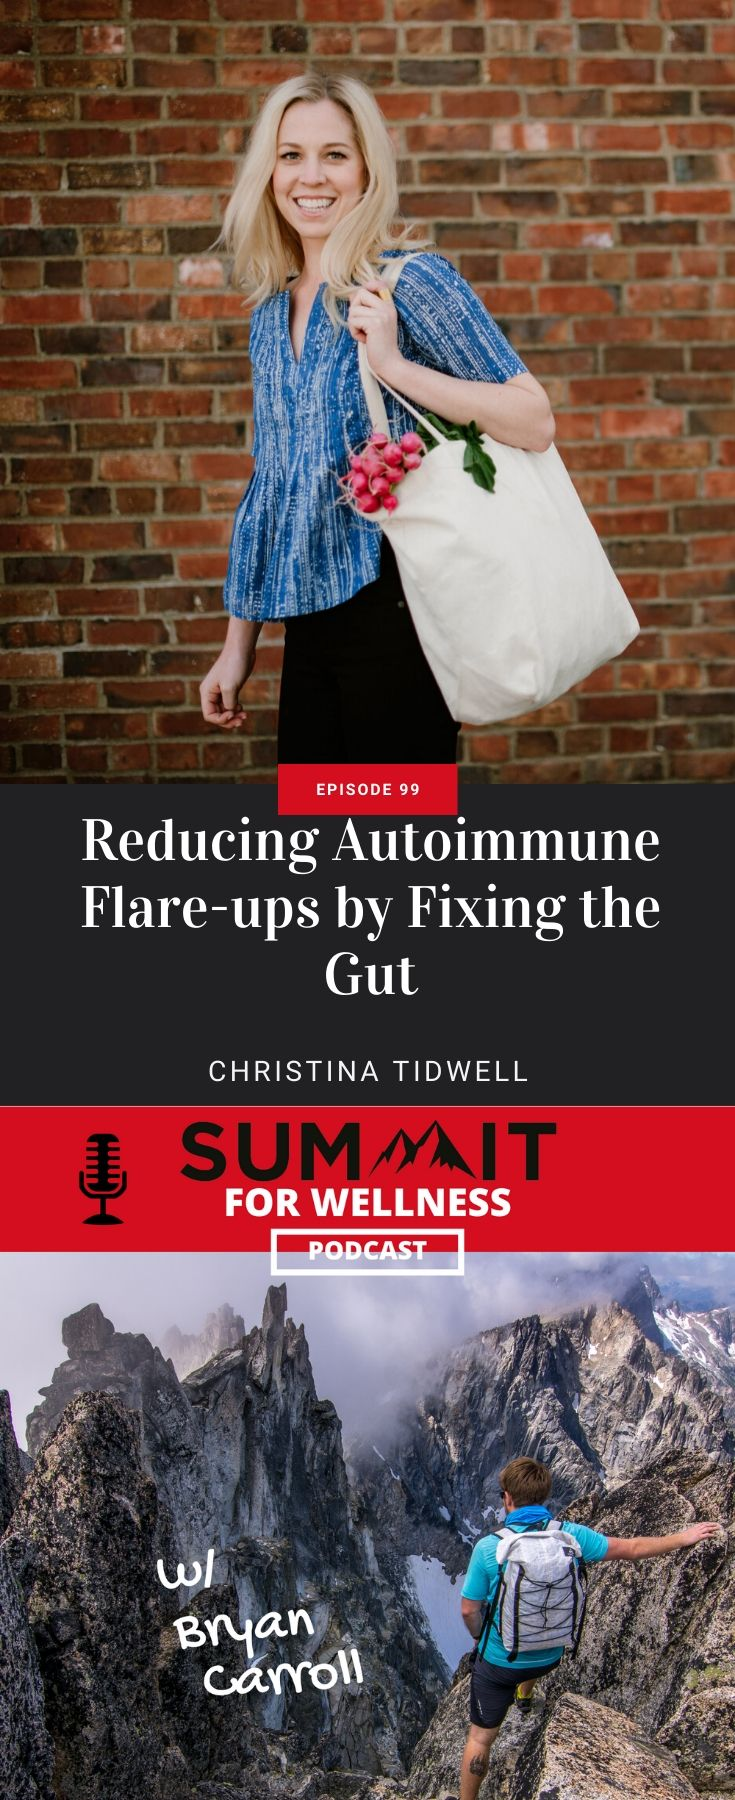 Christina Tidwell teaches those with autoimmune conditions how to improve their gut health